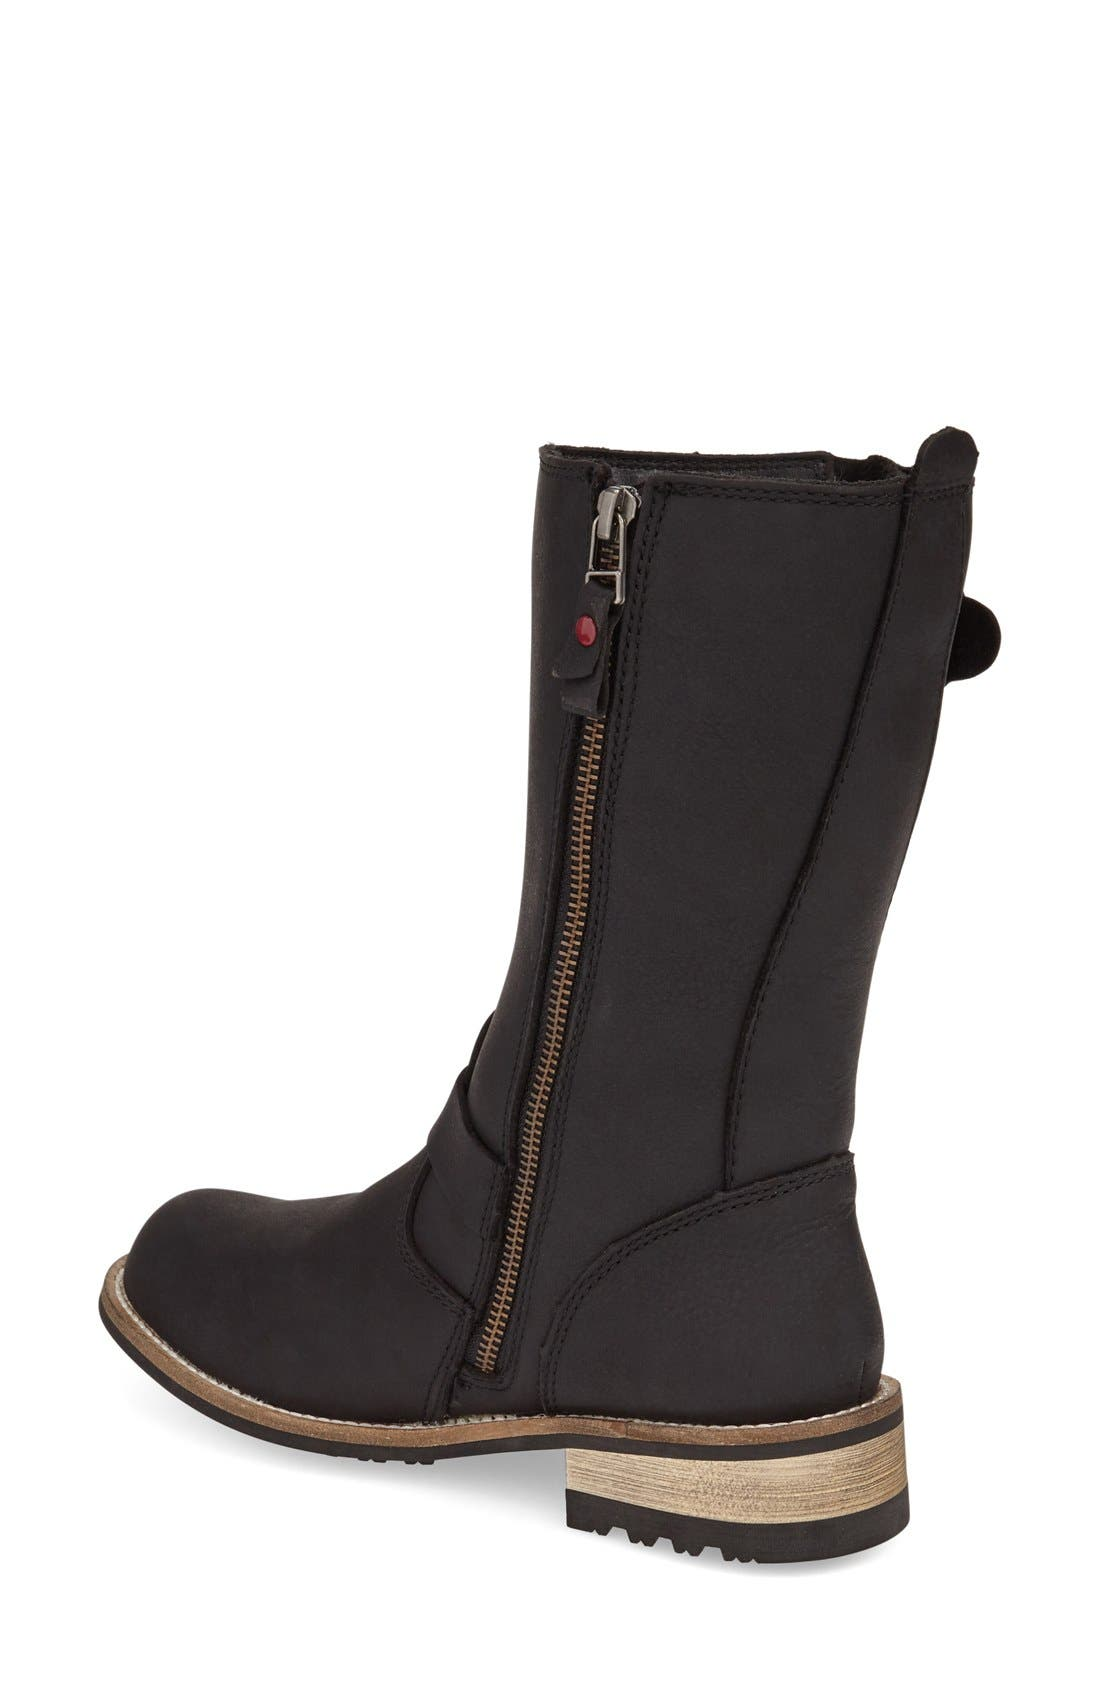 'Alcona' Waterproof Boot,                             Alternate thumbnail 2, color,                             BLACK LEATHER